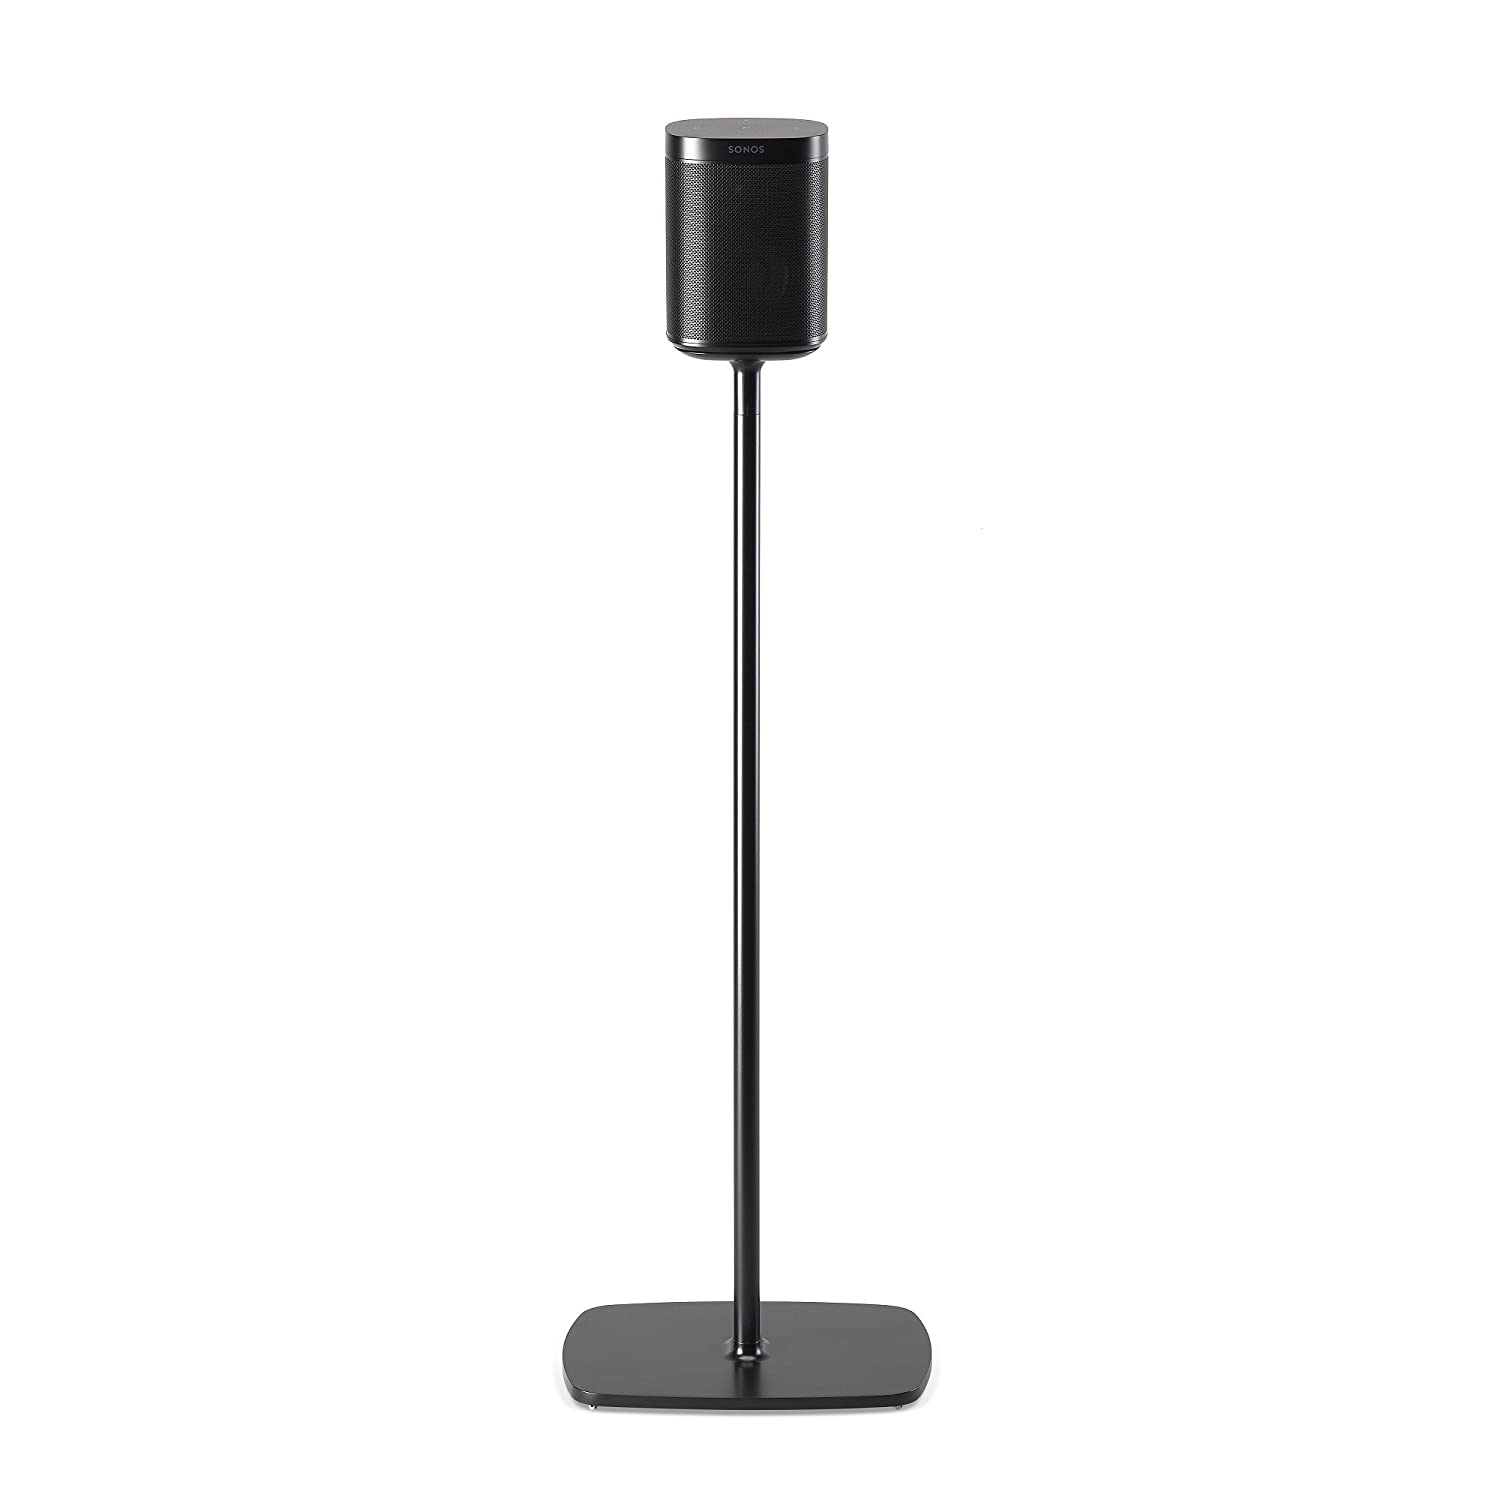 Flexson Floor Stand for Sonos One - Black S1FS1021EU